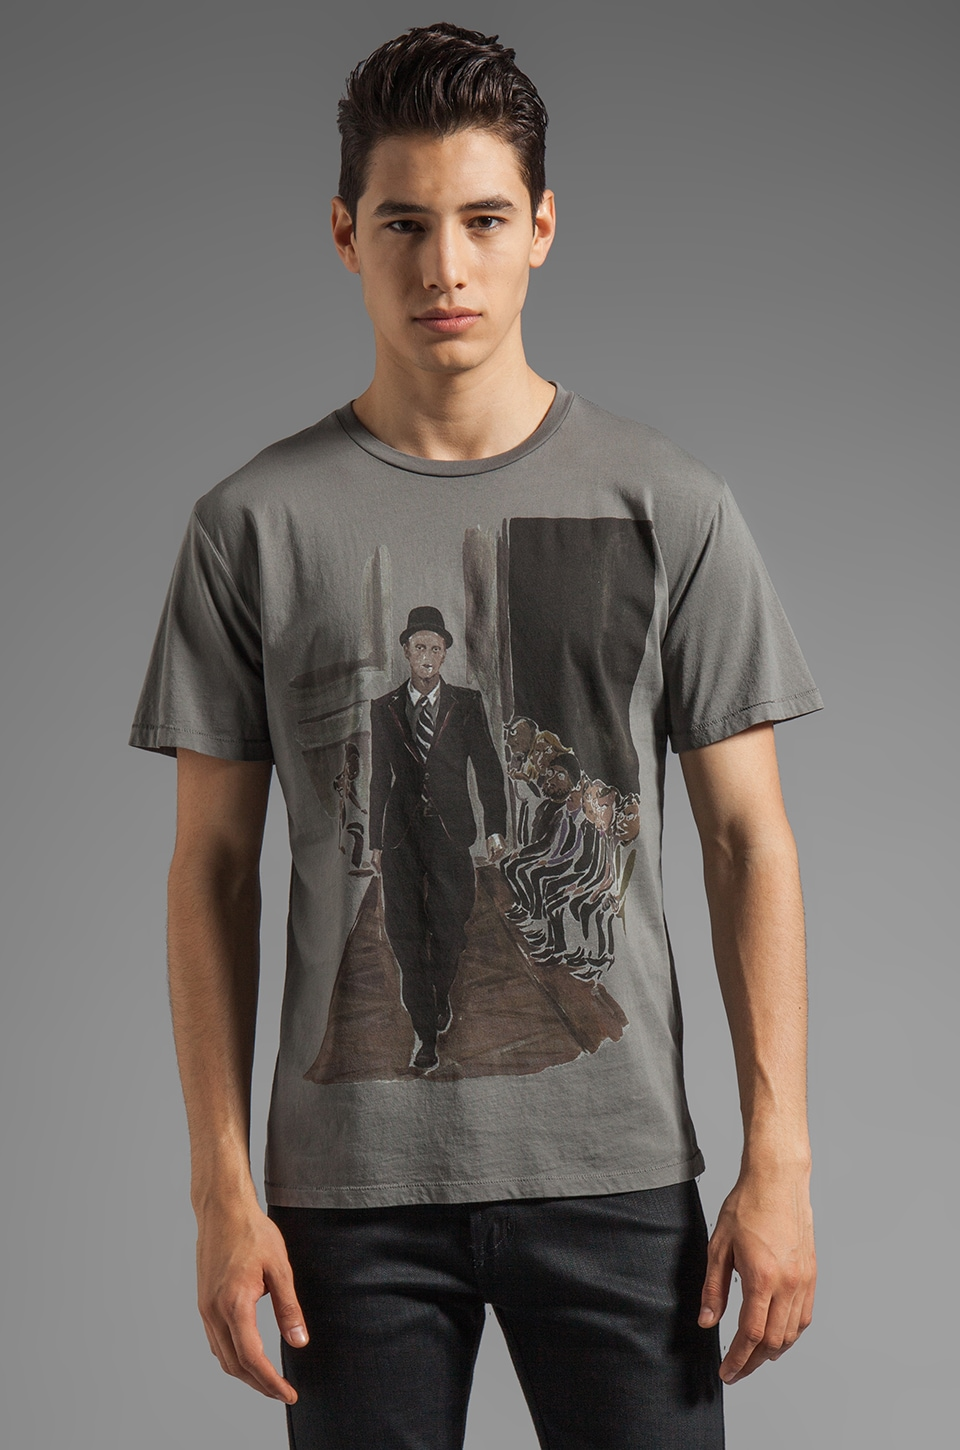 BLOOD IS THE NEW BLACK Pour Homme MC Tee in Charcoal Grey